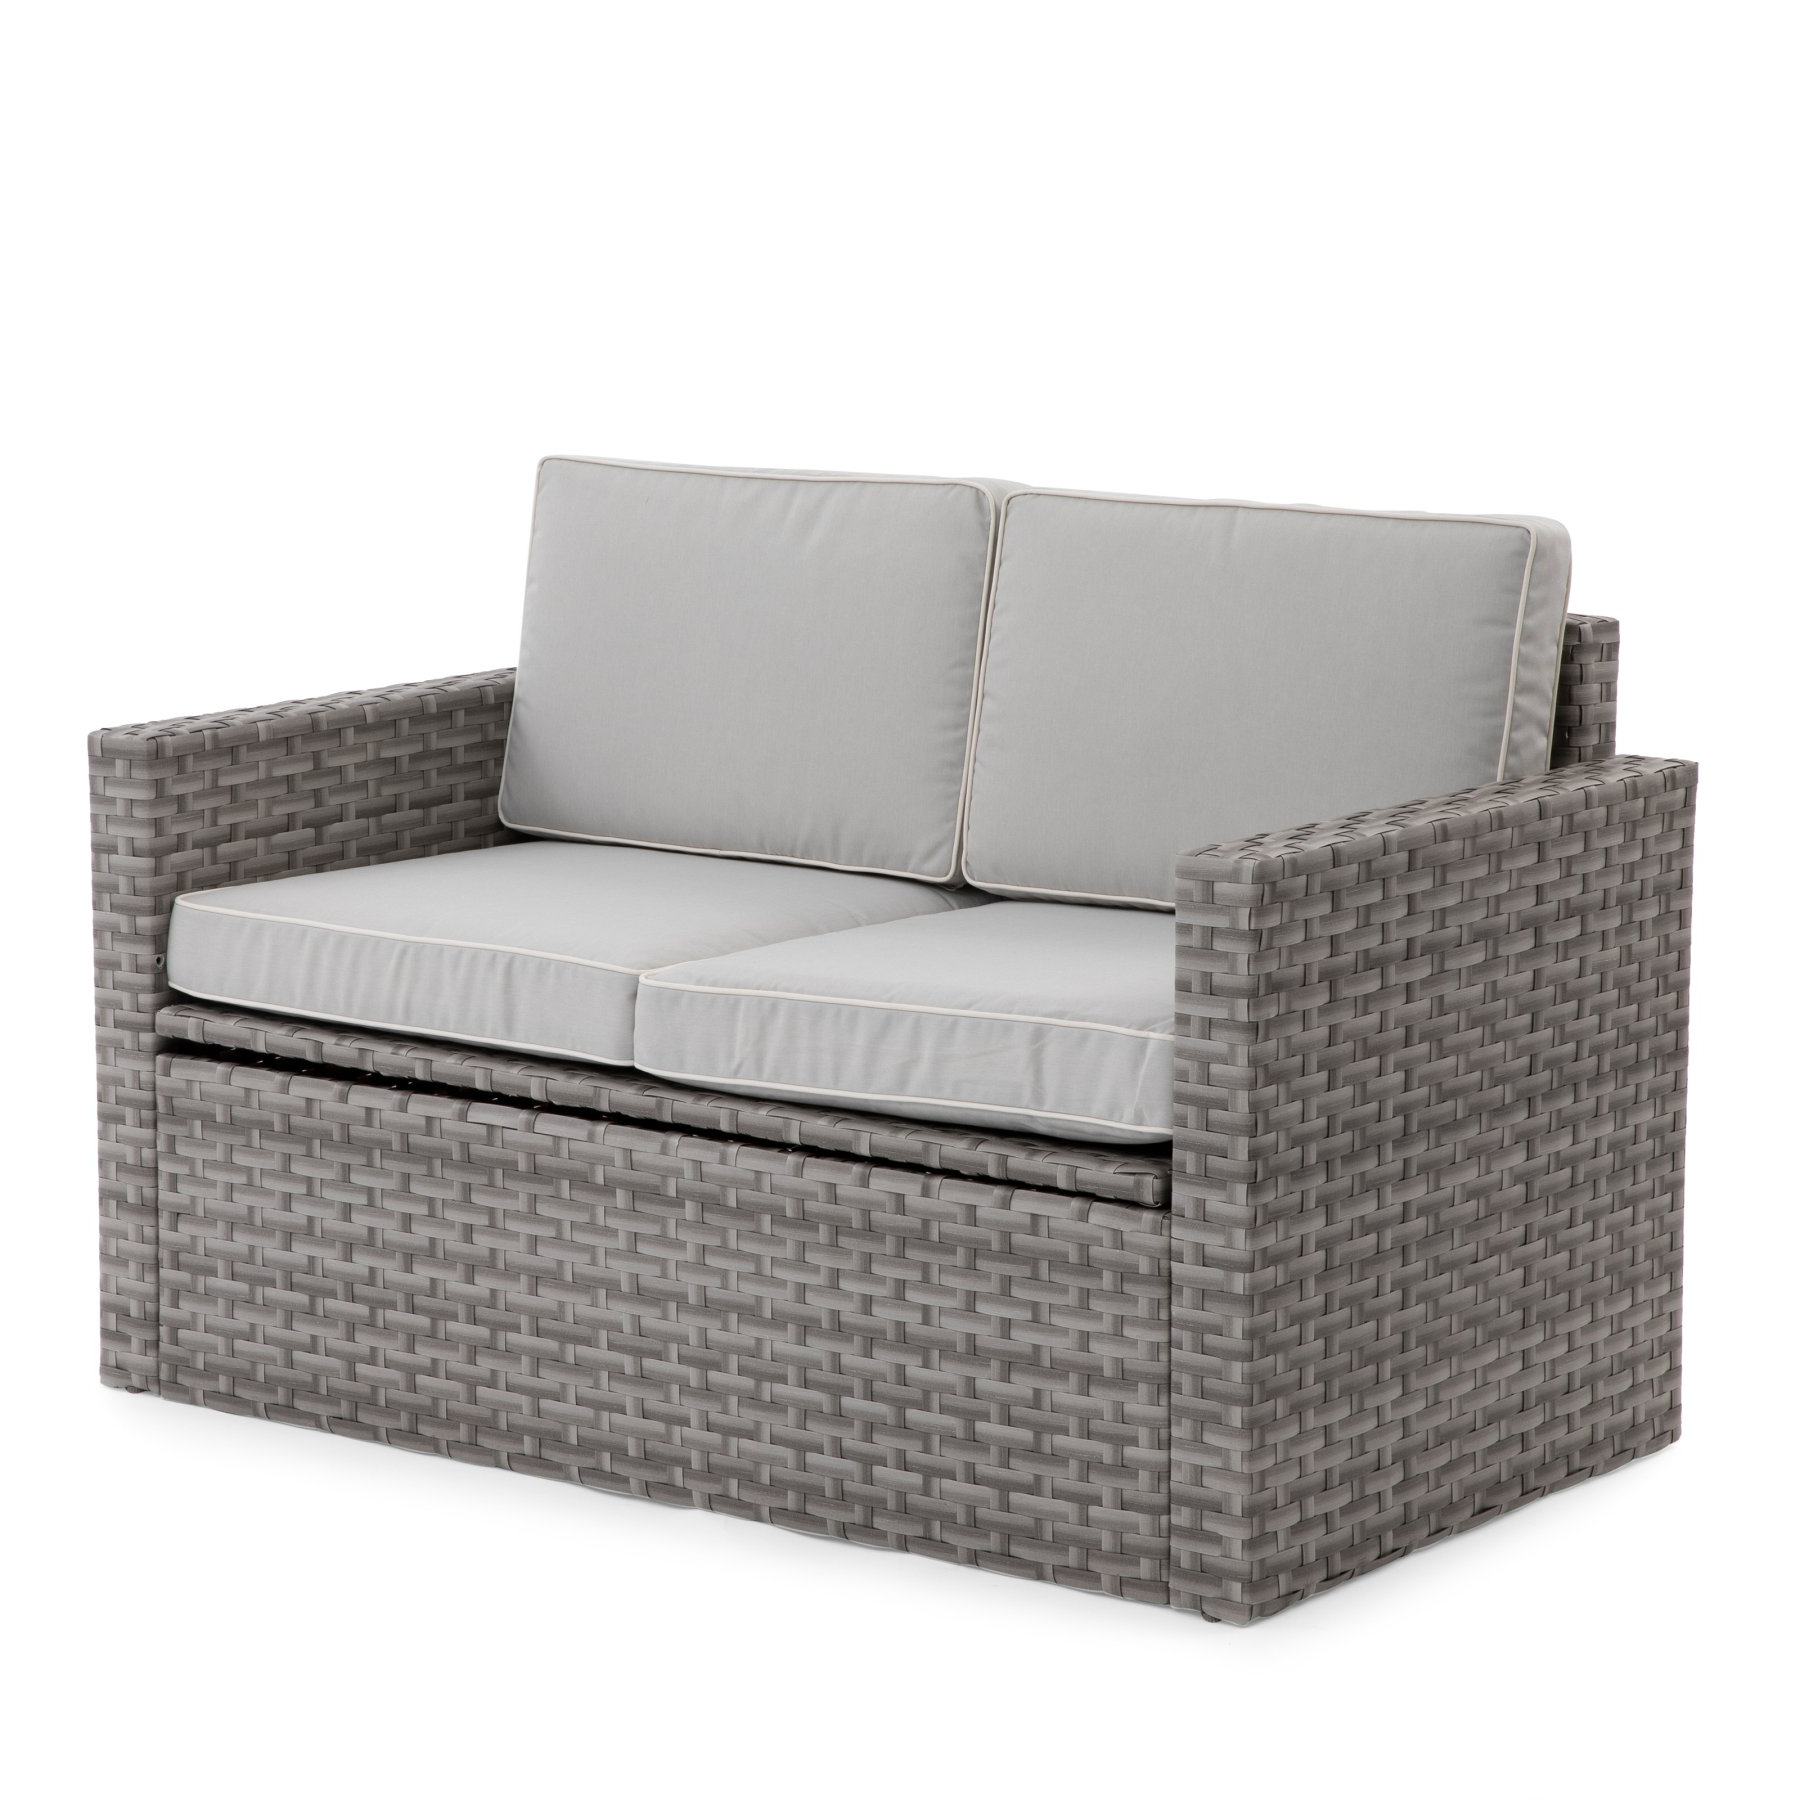 Favorite Freitag Loveseats With Cushions Throughout Coral Coast Berea Outdoor Wicker Storage Loveseat With (View 15 of 20)